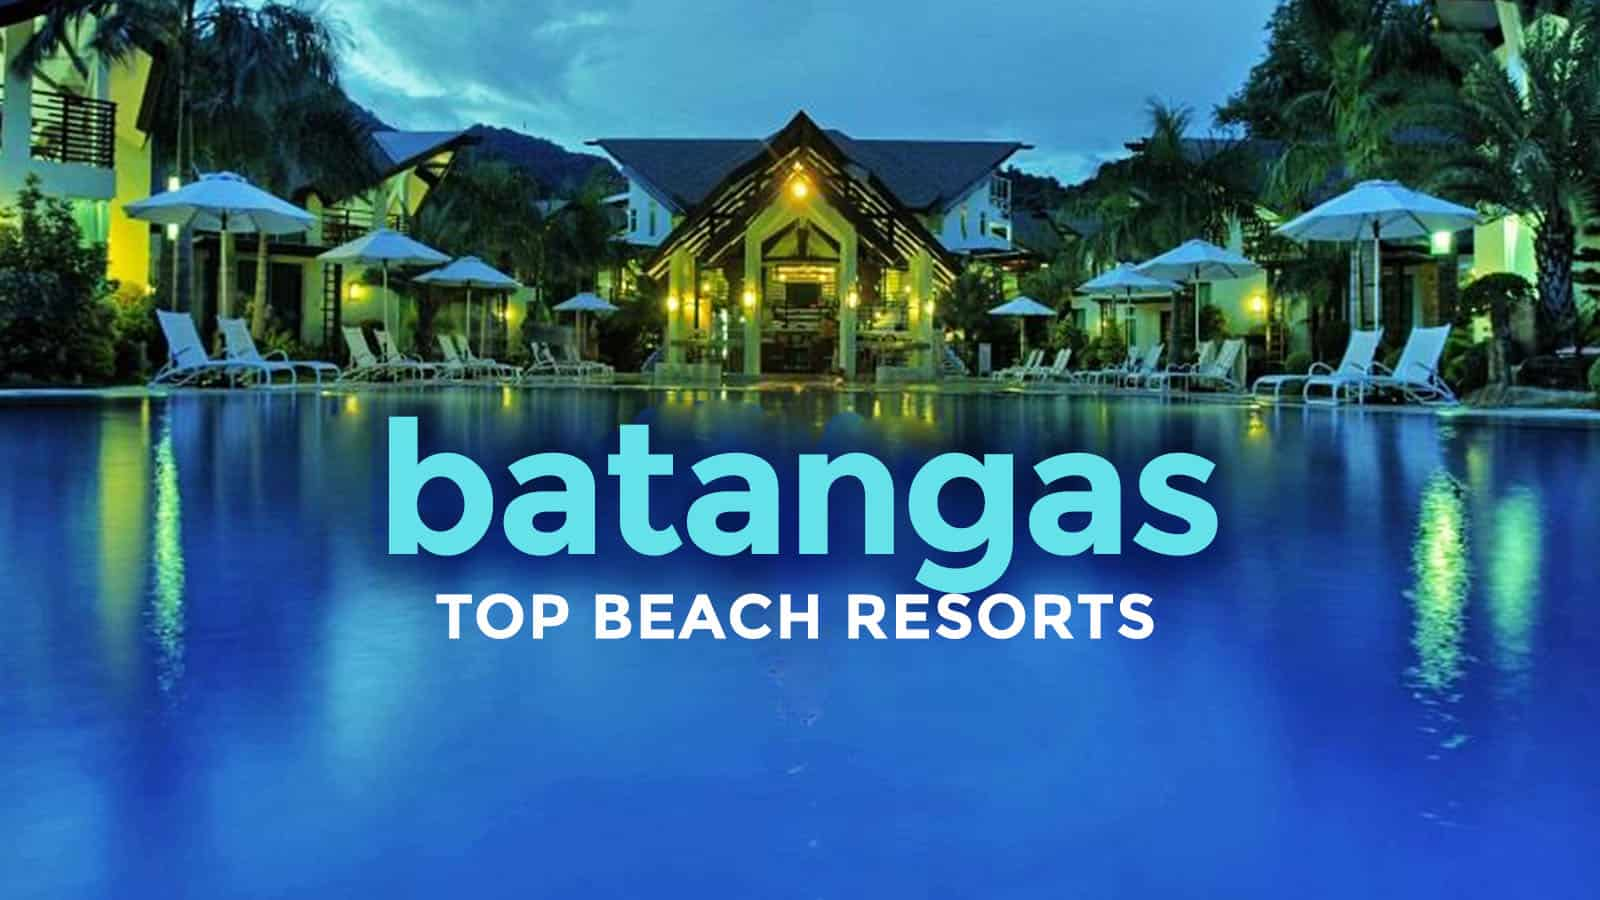 TOP 15 BATANGAS BEACH RESORTS